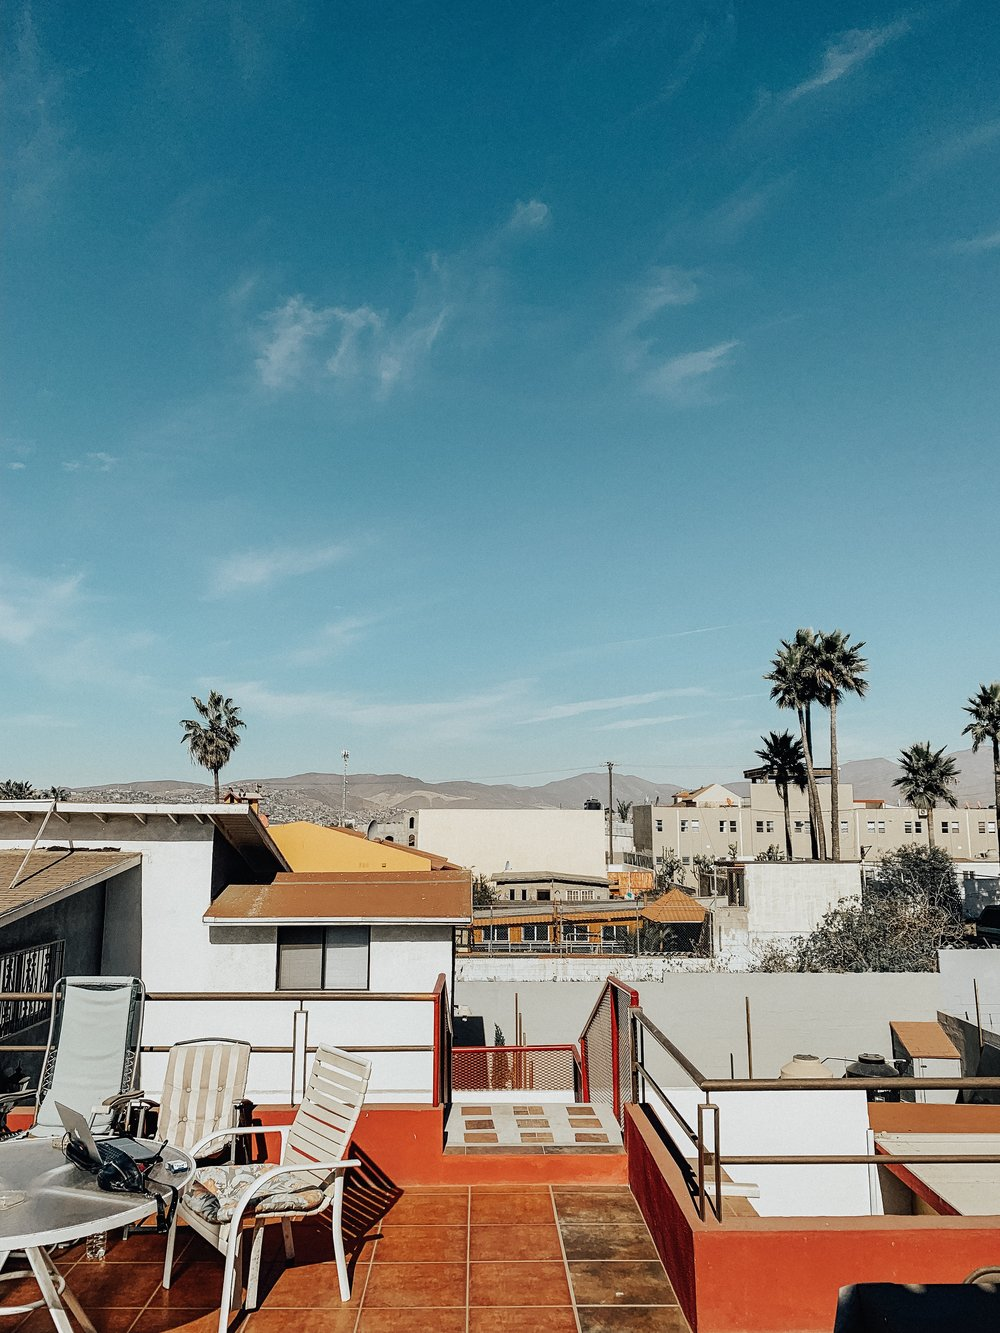 The roof of our Ensenada hostel.